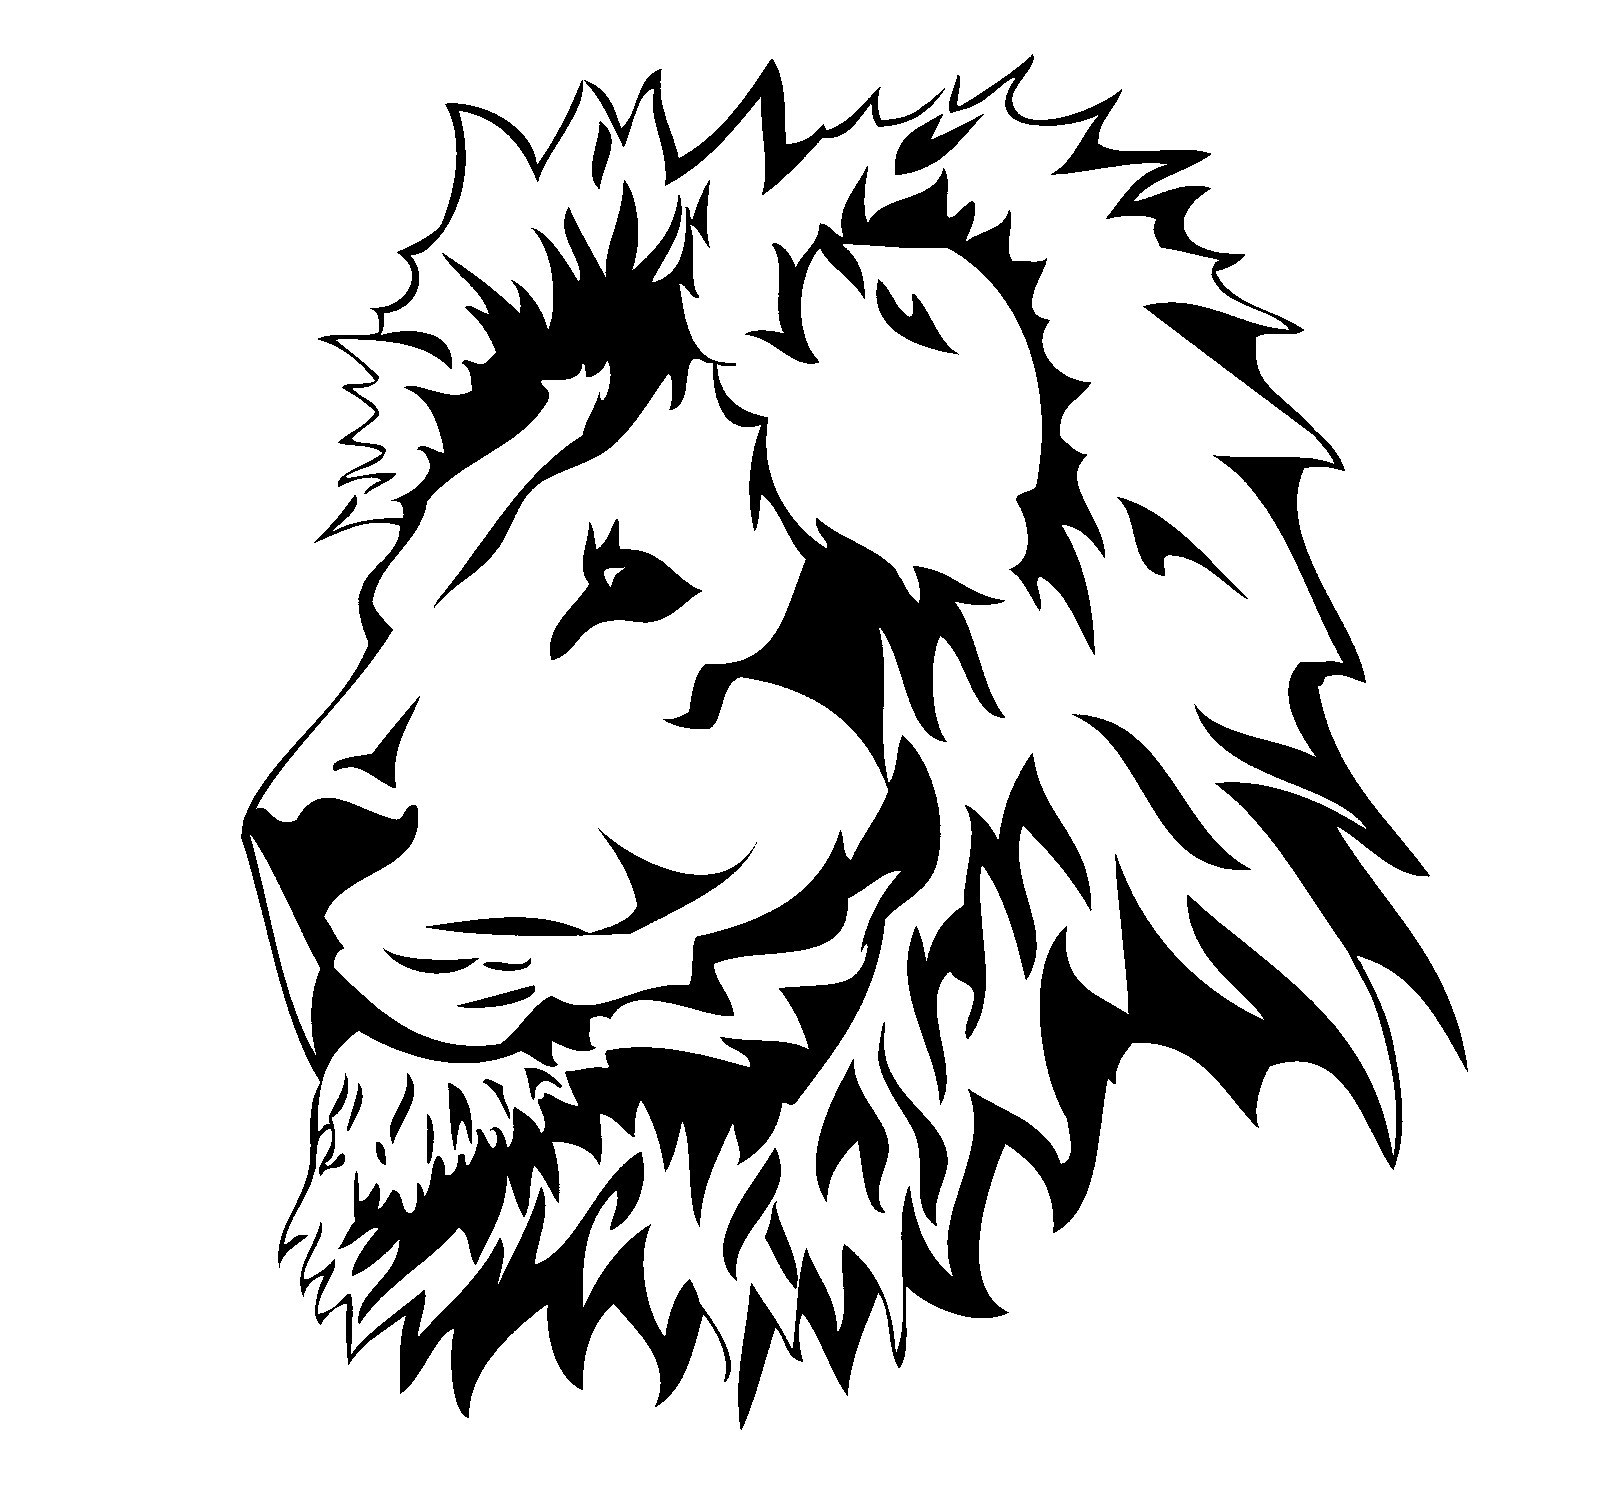 Lion head clipart black and white 7 » Clipart Portal.